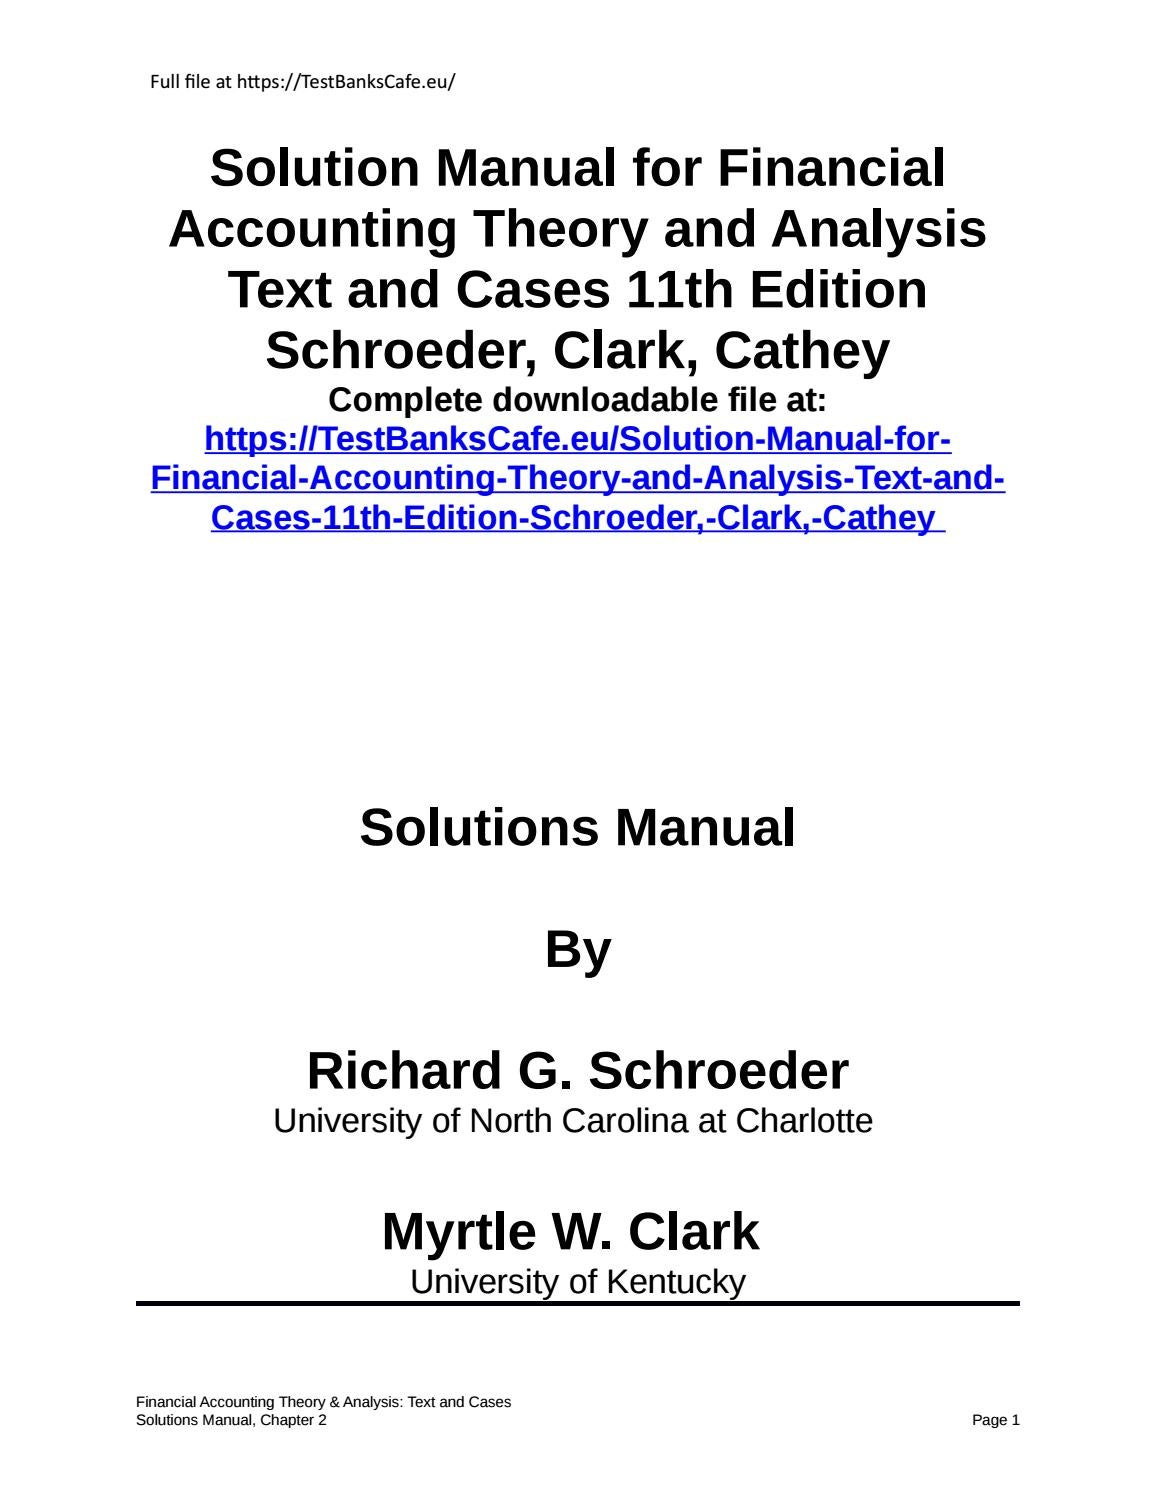 financial statement analysis 10e solution manual